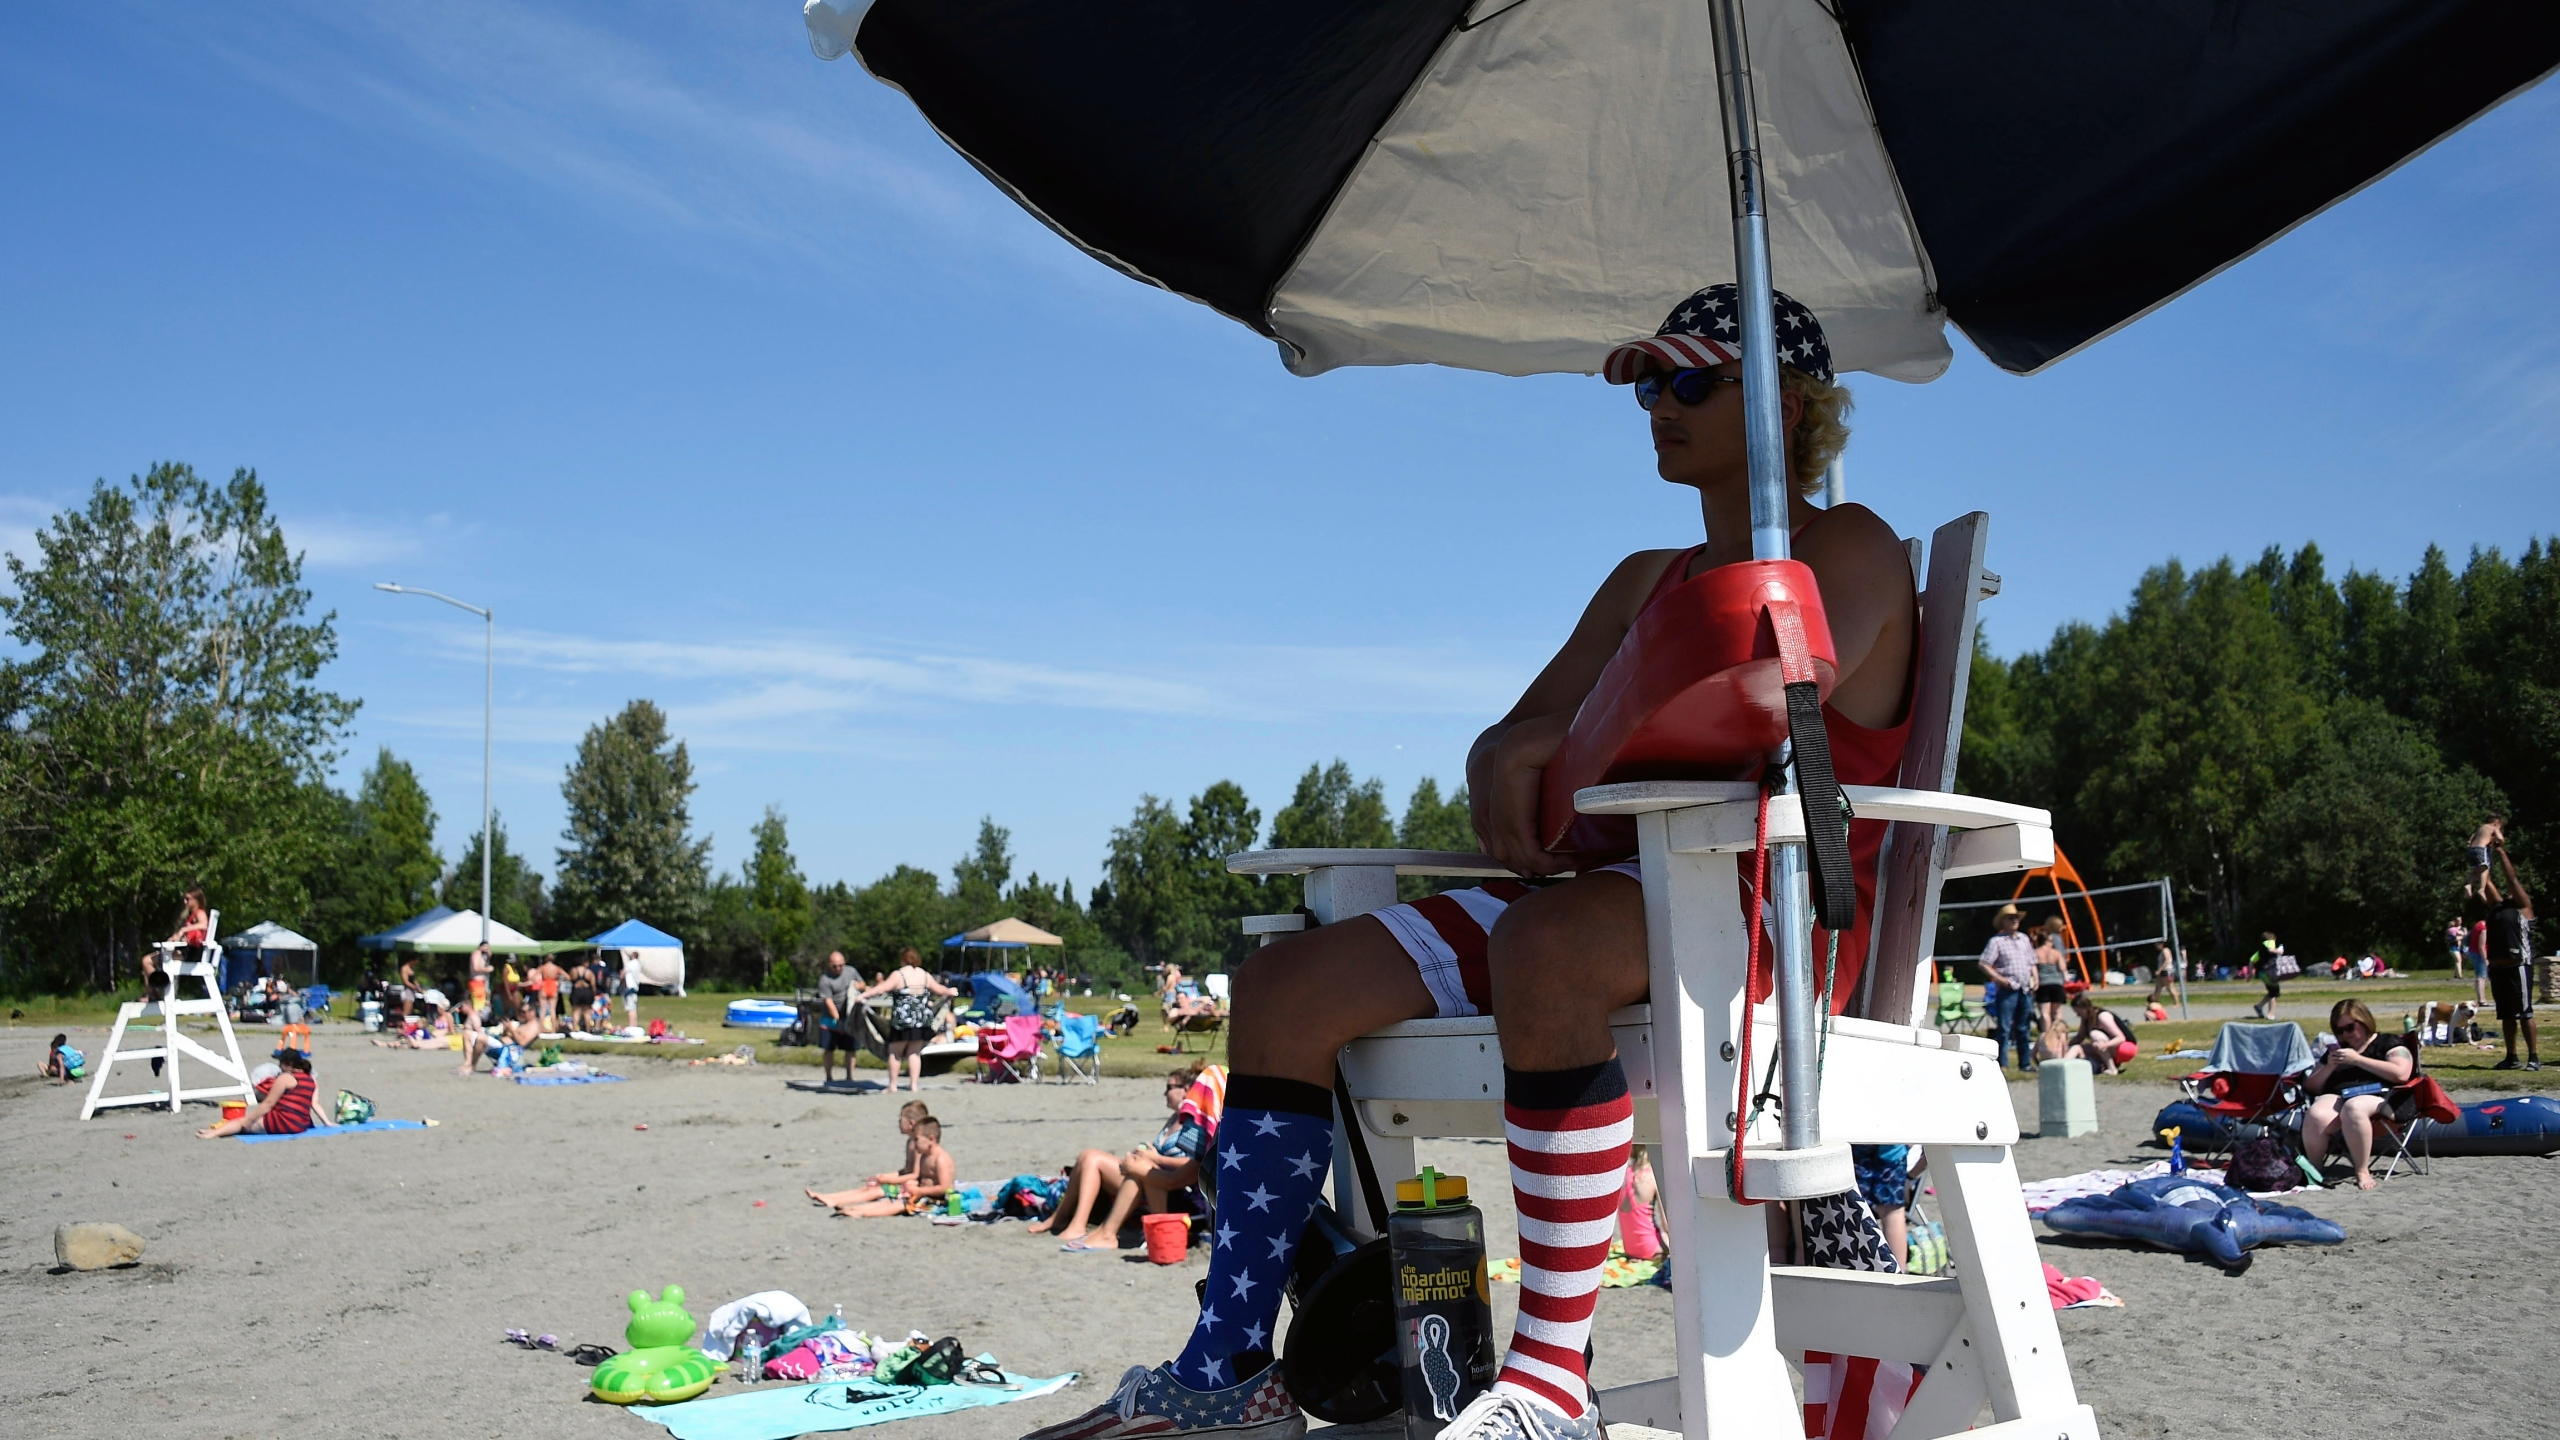 A lifeguard keeps watch at Jewel Lake on July 4, 2019 in Anchorage, Alaska. (Credit: Lance King/Getty Images)